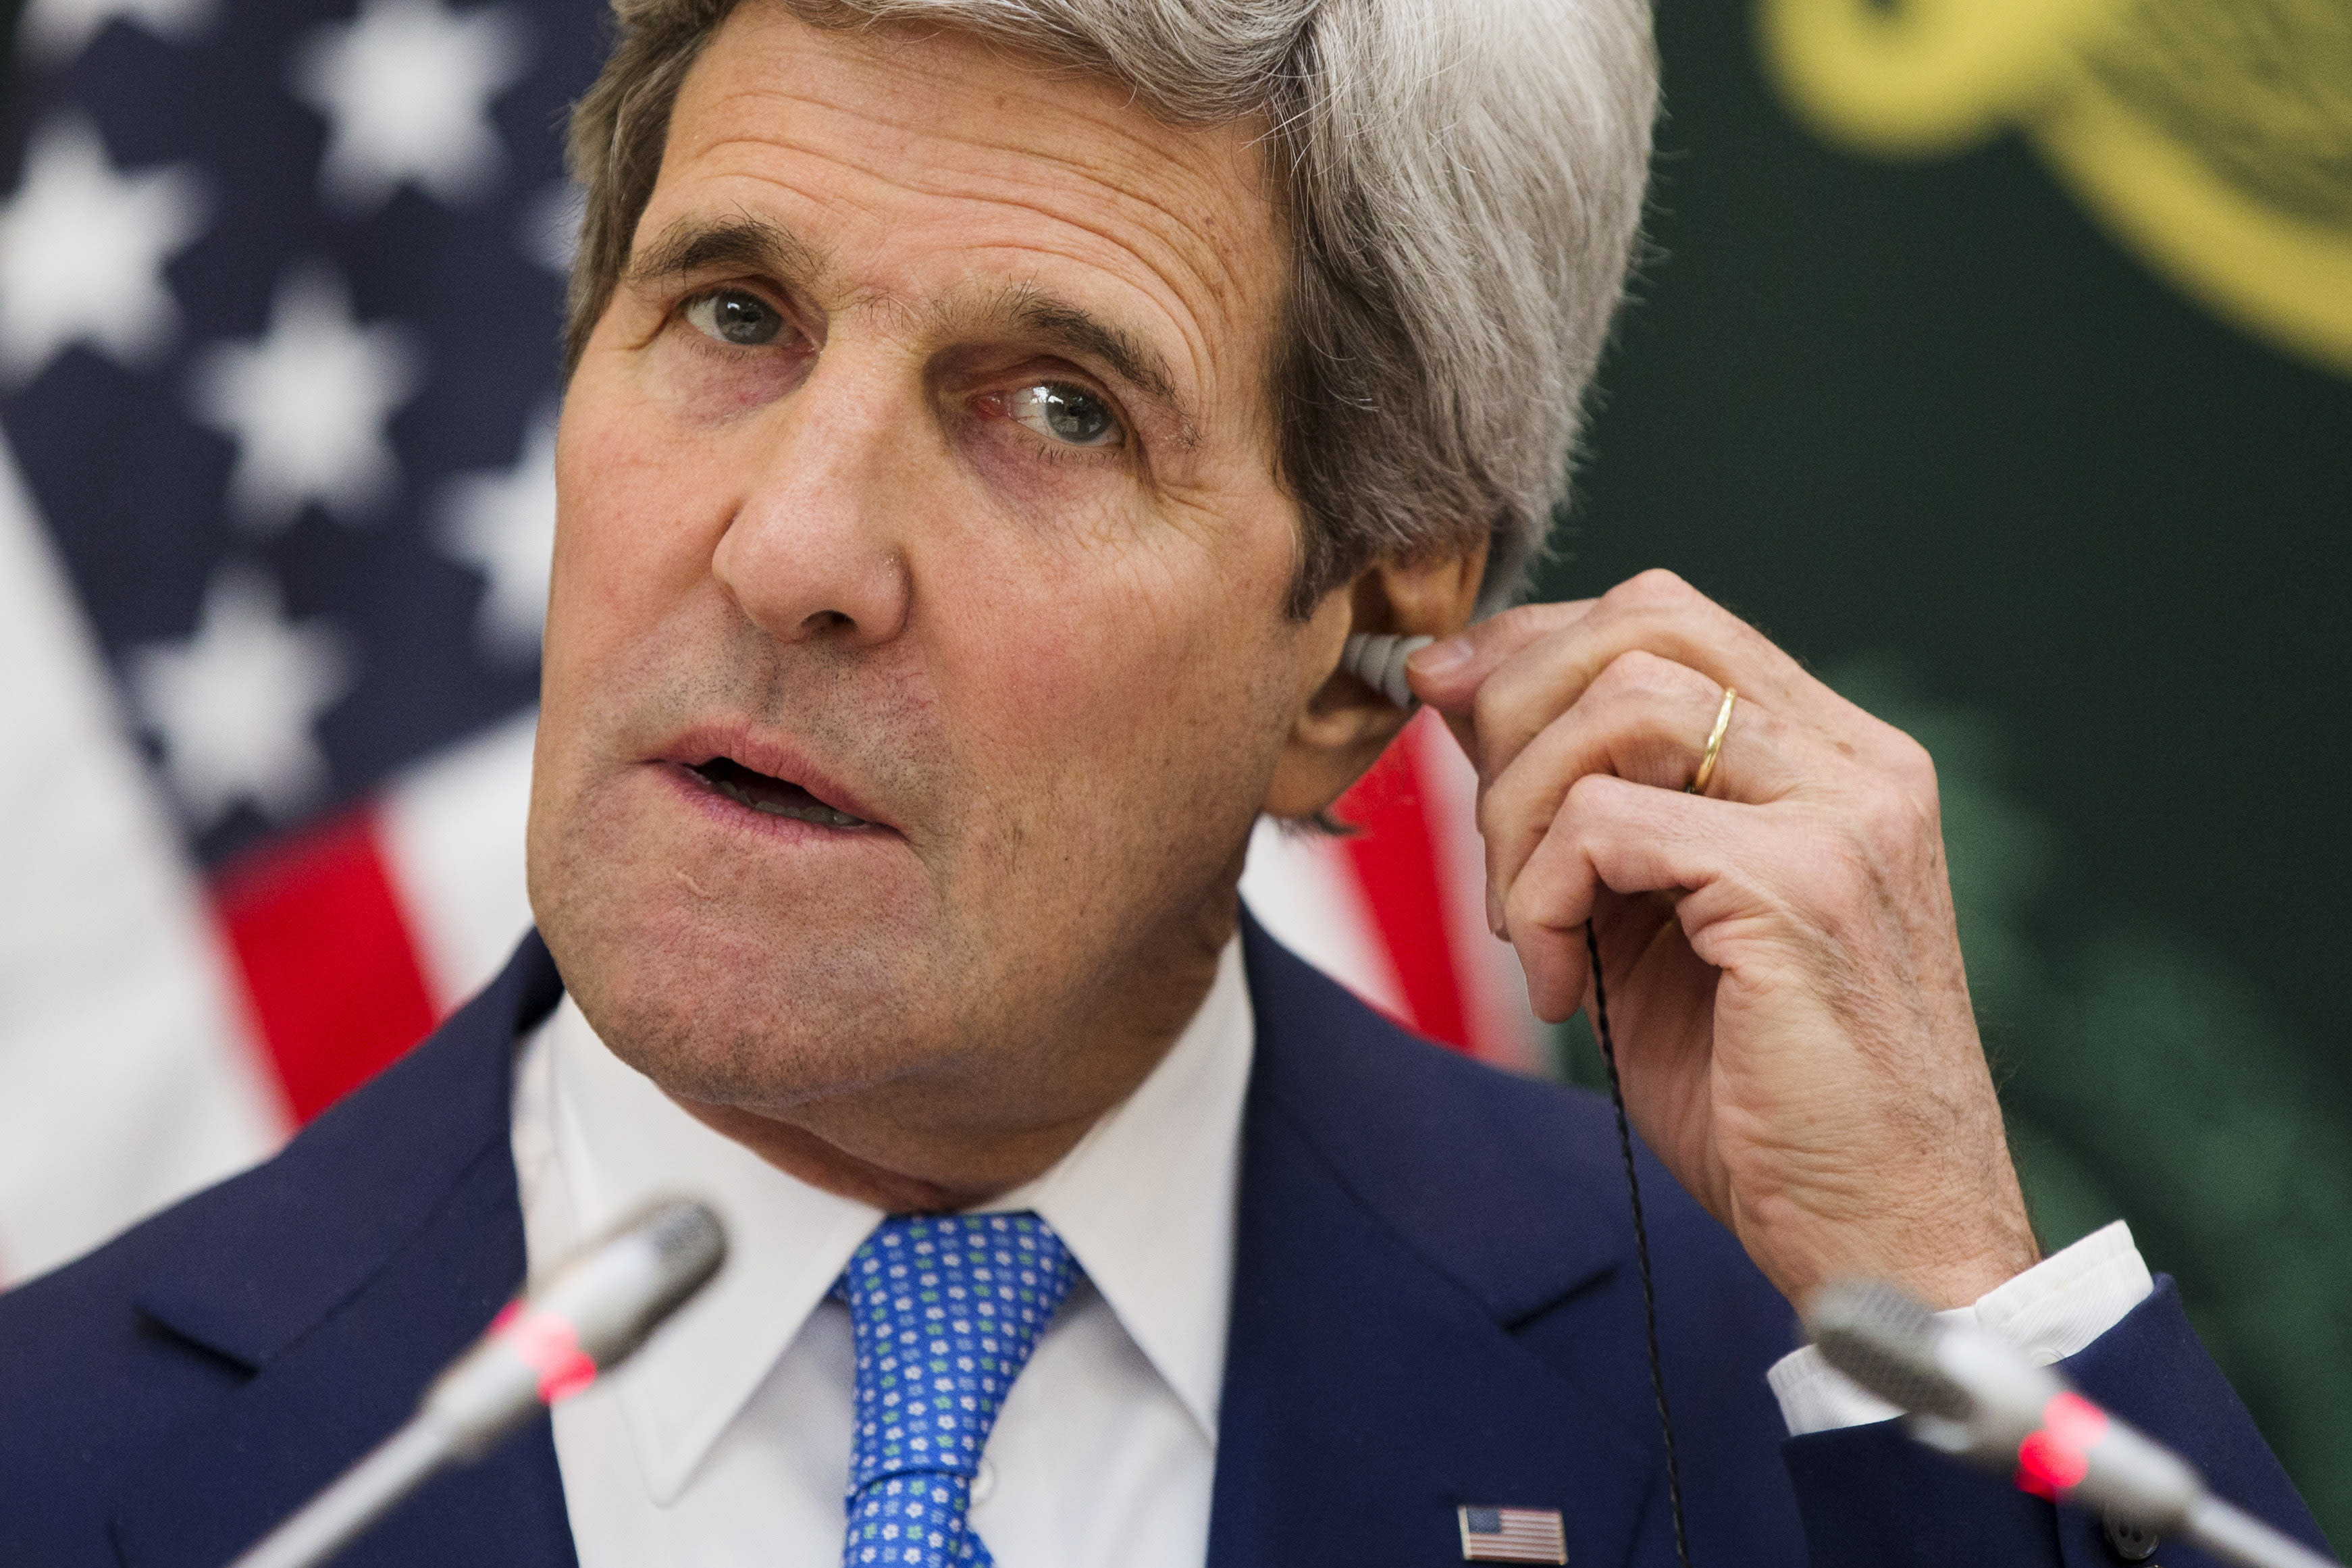 Kerry seeks to ease Arab concerns of Iran deal